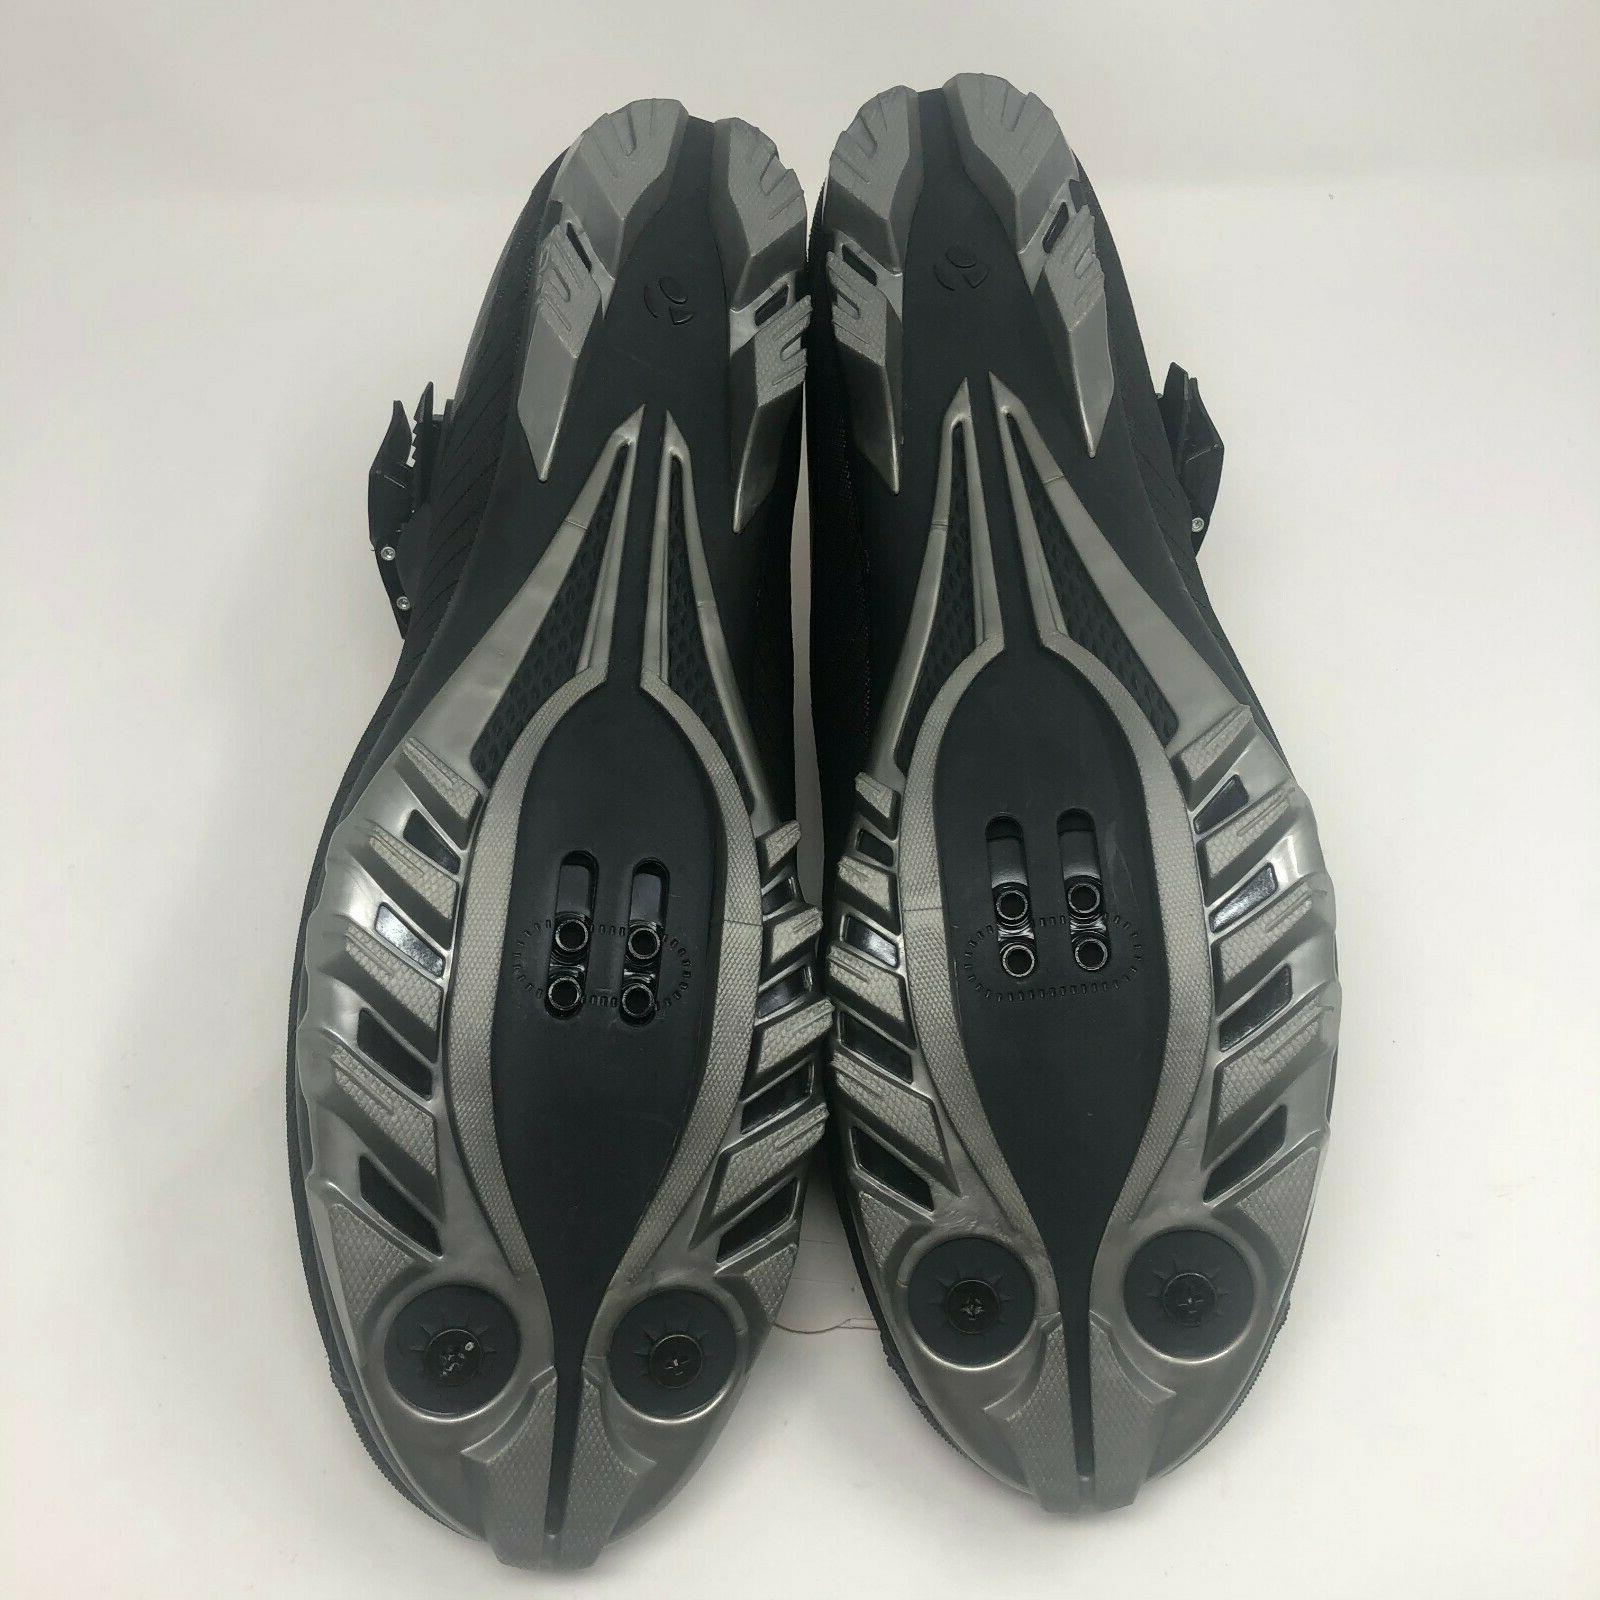 Bontrager Shoes Black Size 14.5,